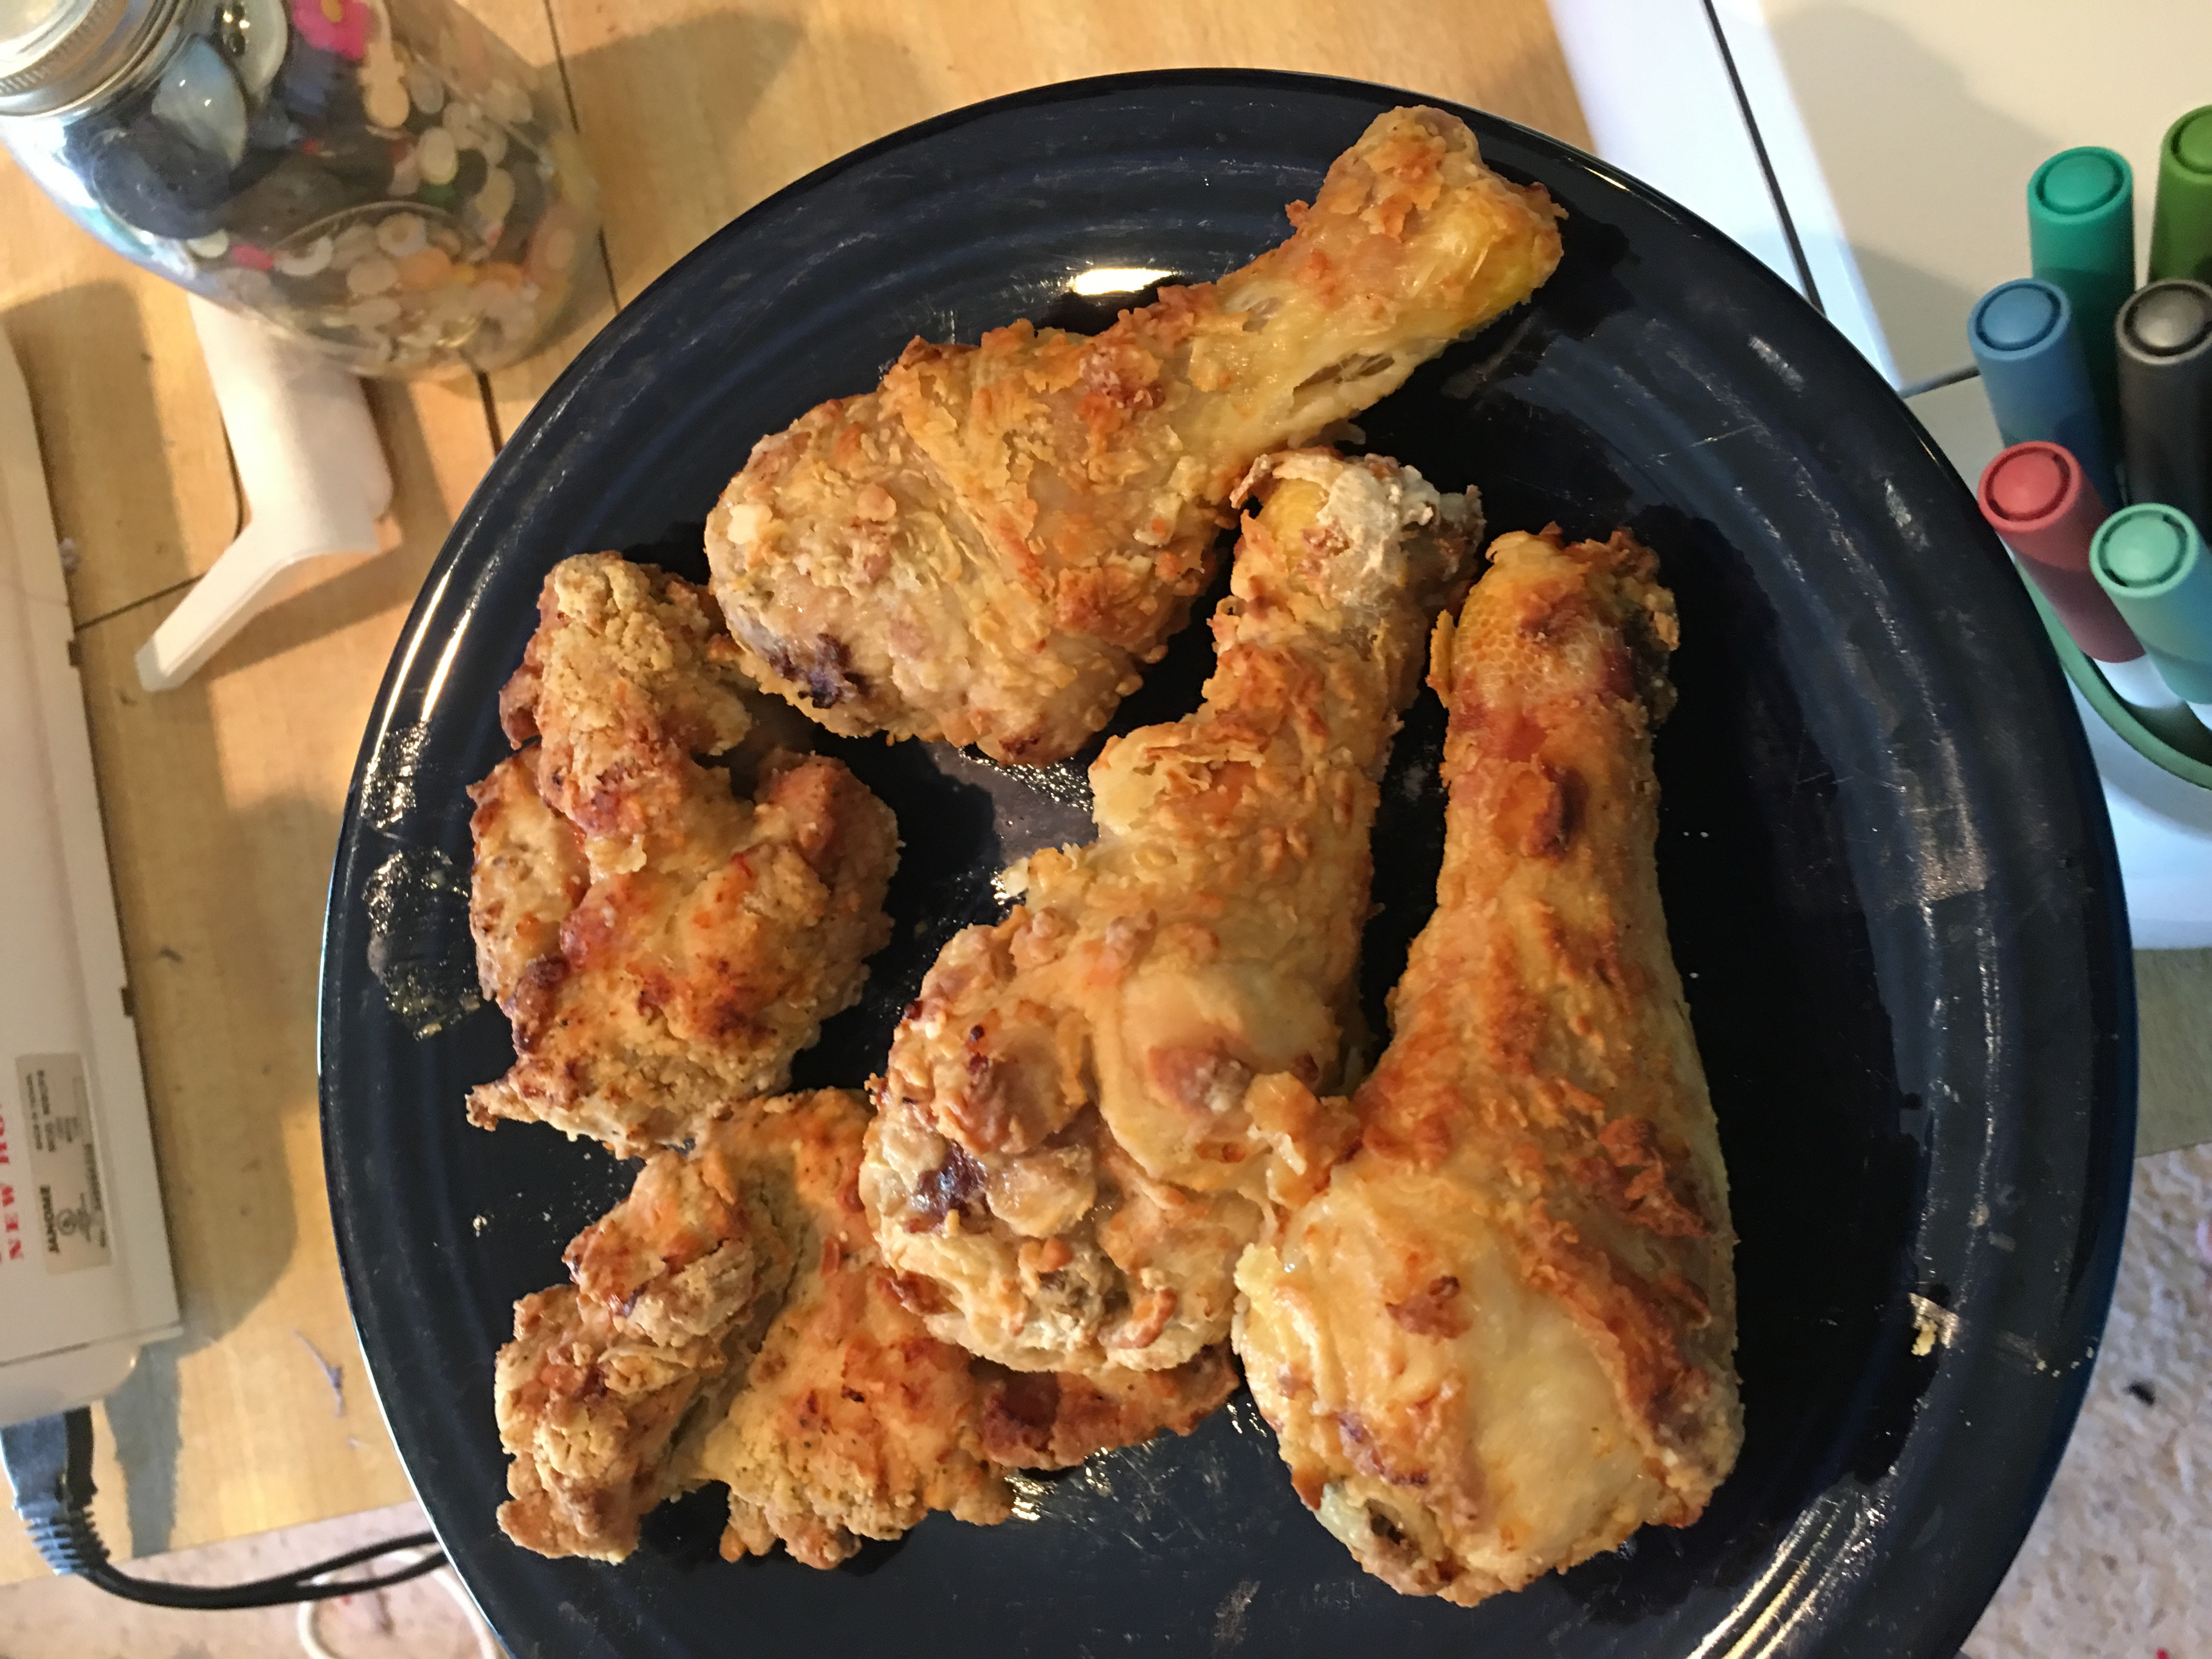 Fried Chicken In Air Fryer  Fried Chicken in the Air Fryer Kids Coupons and Krafts